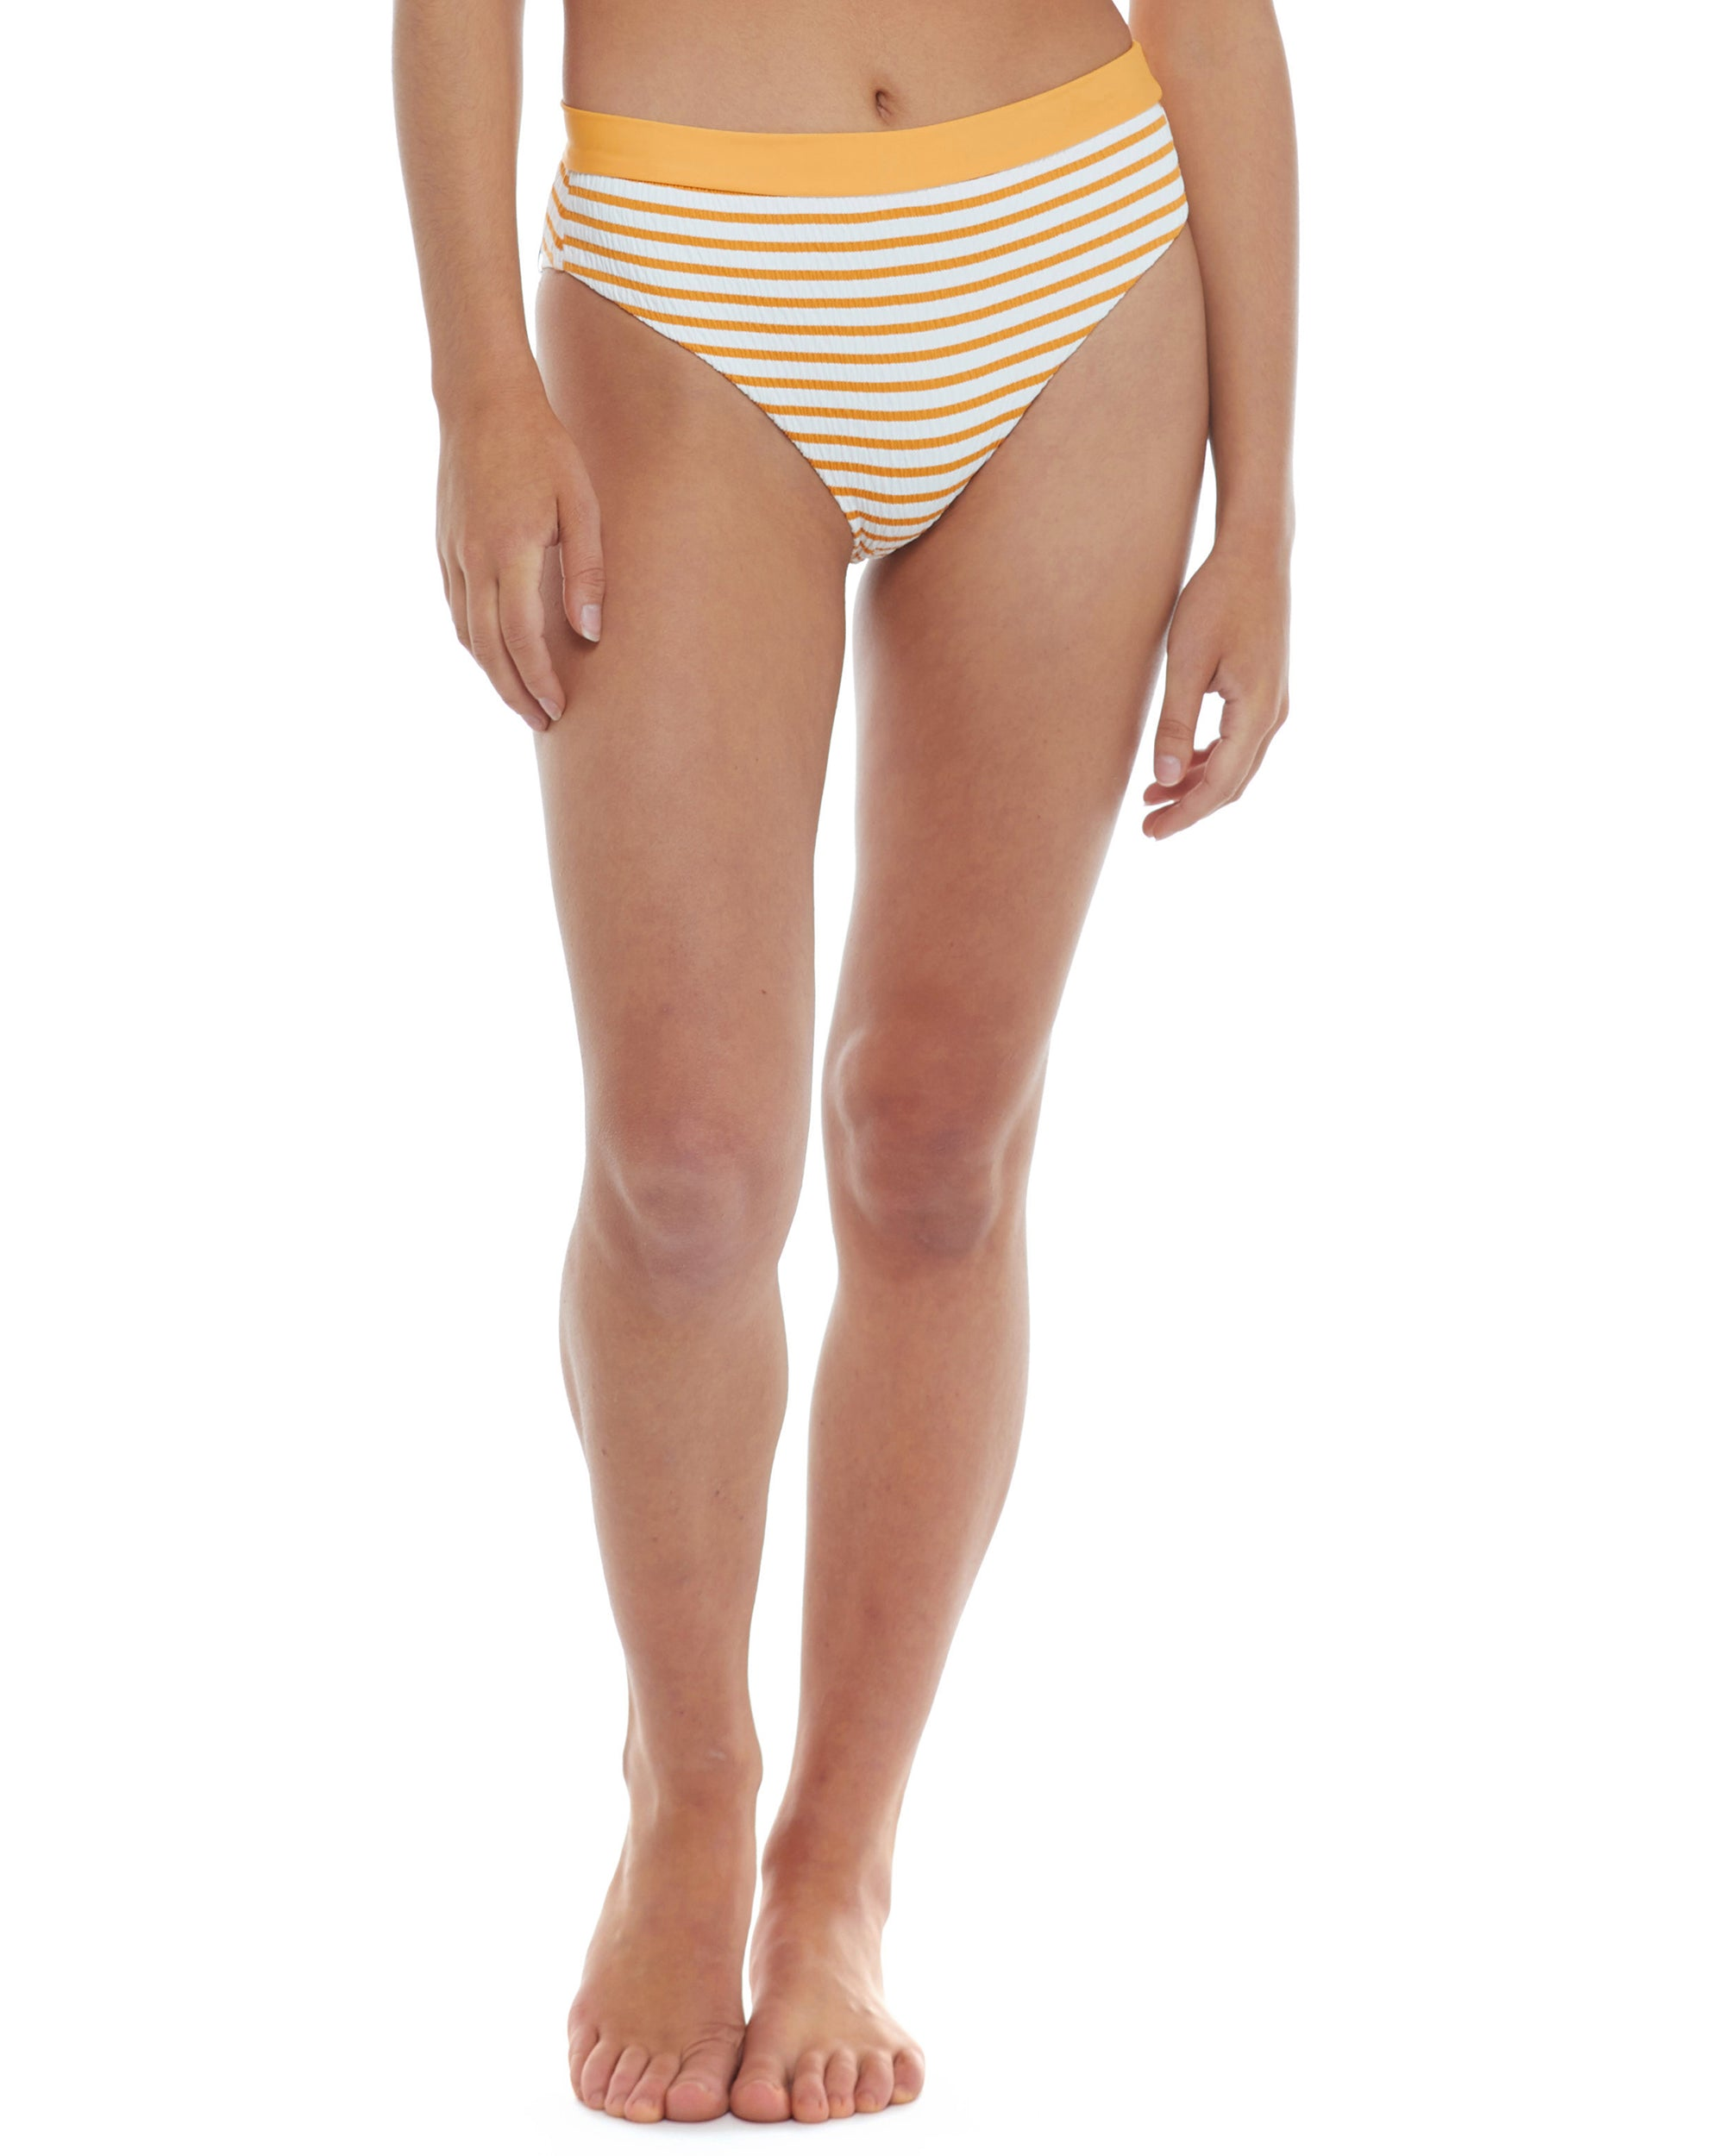 French Riviera Marlee High-Waist Bikini Bottom - Sundream